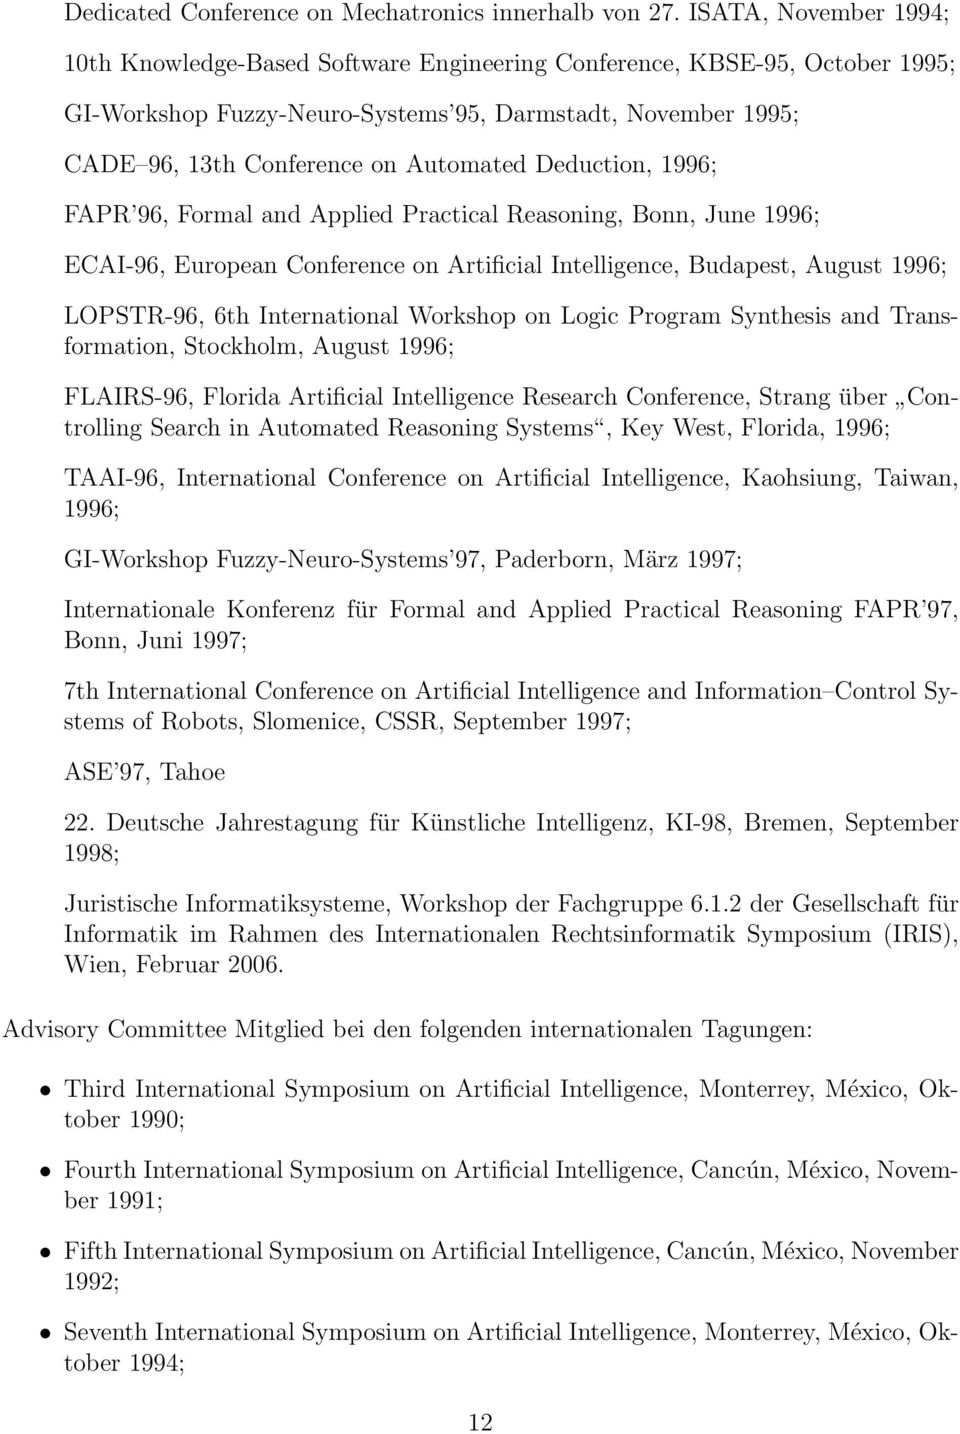 Deduction, 1996; FAPR 96, Formal and Applied Practical Reasoning, Bonn, June 1996; ECAI-96, European Conference on Artificial Intelligence, Budapest, August 1996; LOPSTR-96, 6th International